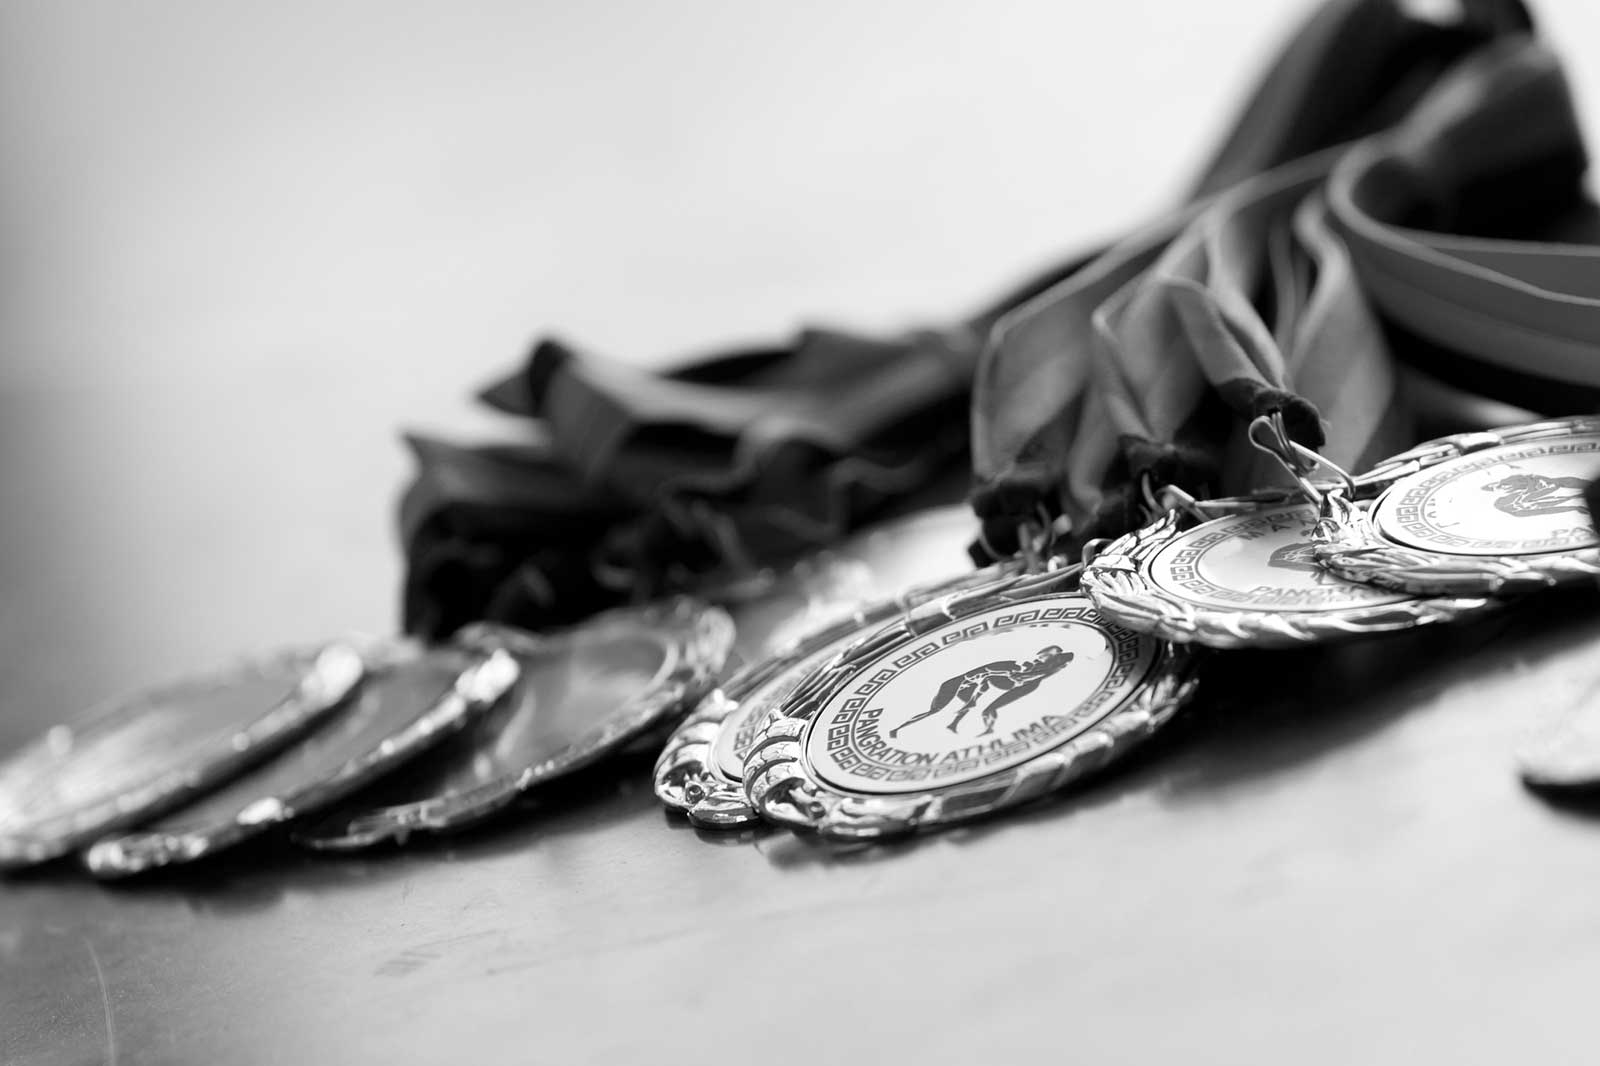 Black and white image of Olympic medals representative of awards.